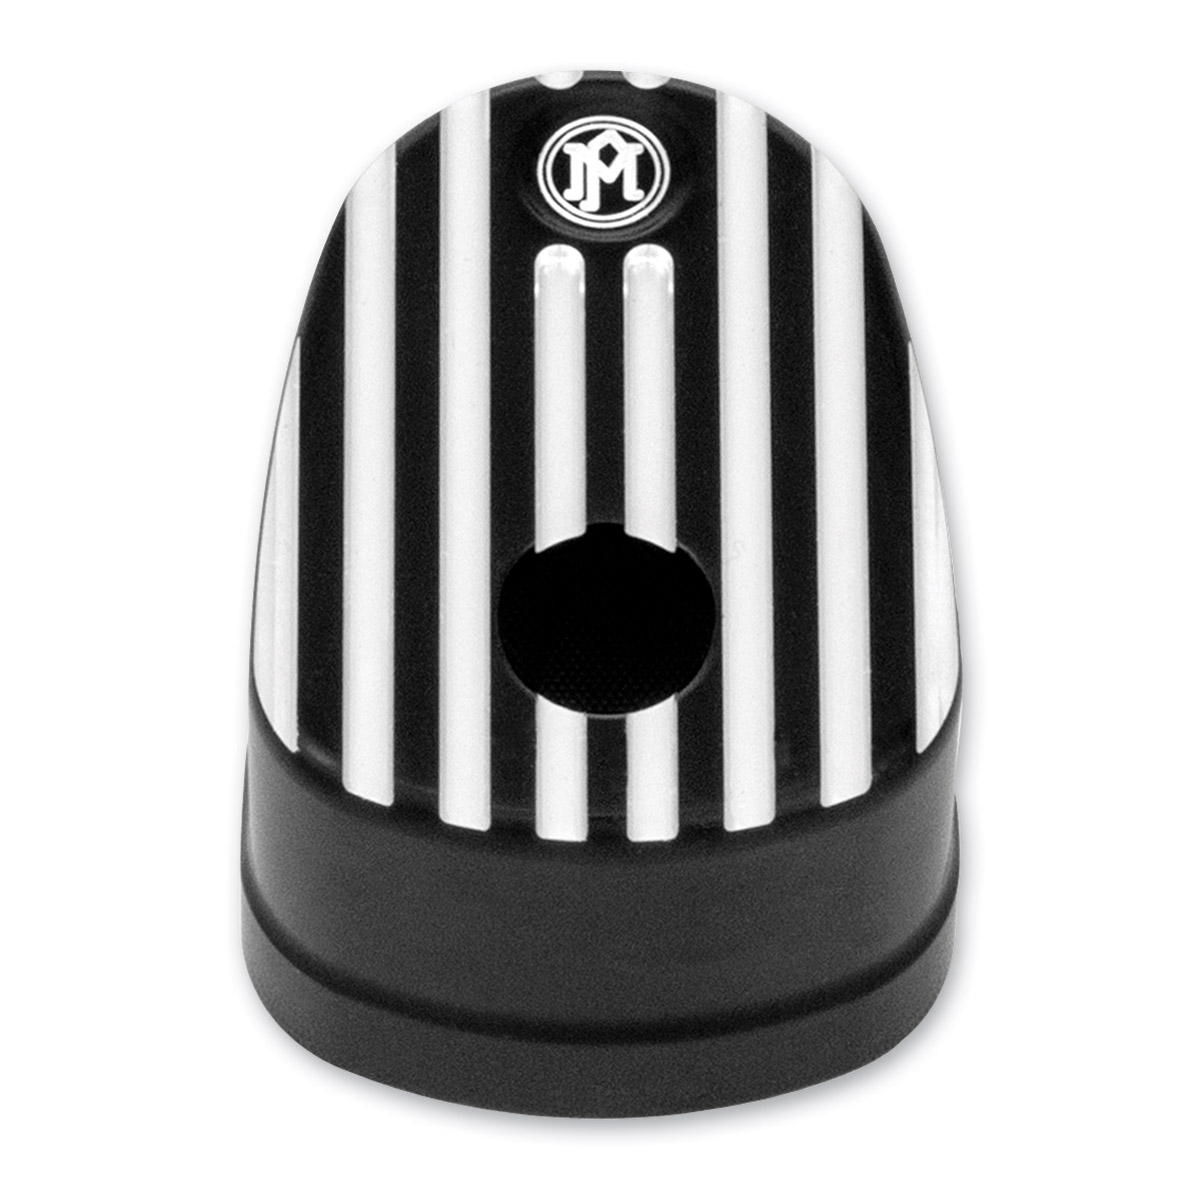 Performance Machine Black Grill Ignition Switch Cover